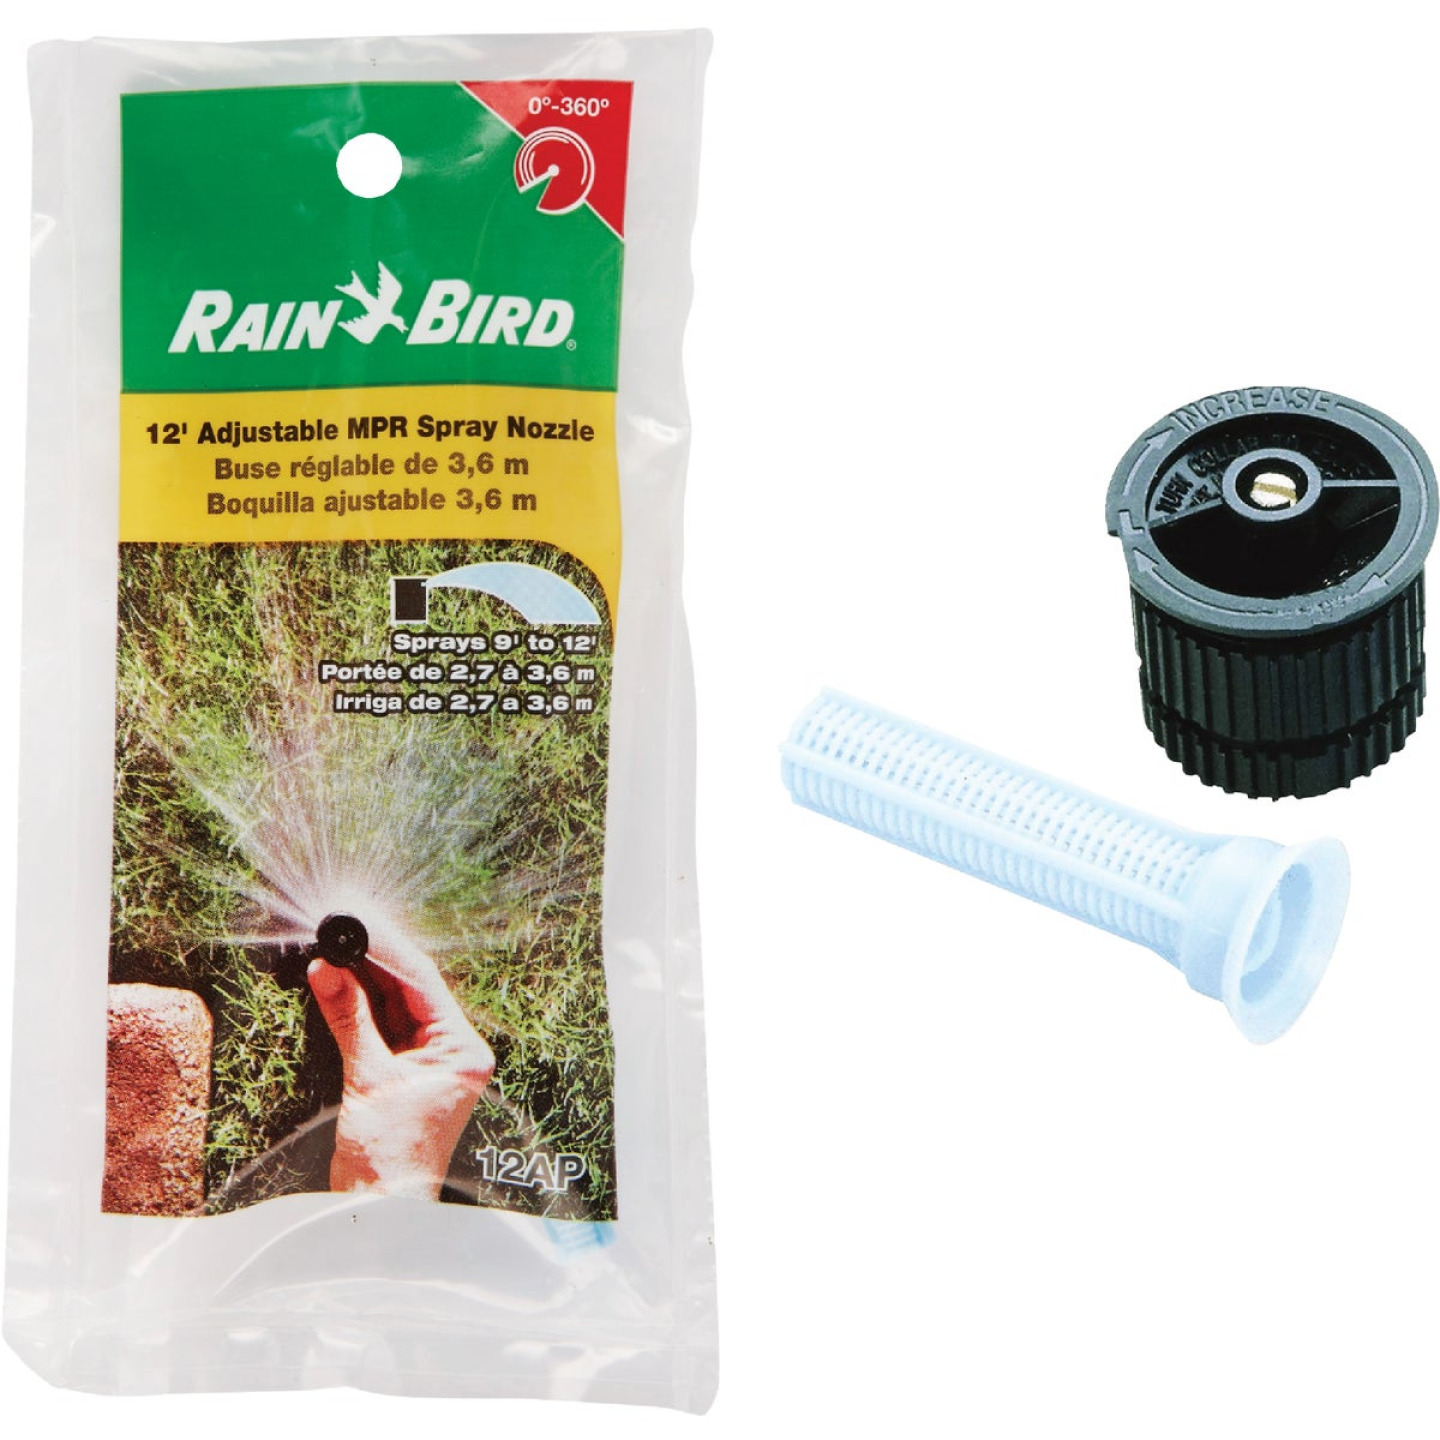 Rain Bird Adjustable 360 Deg. Spray Replacement Nozzle Image 1